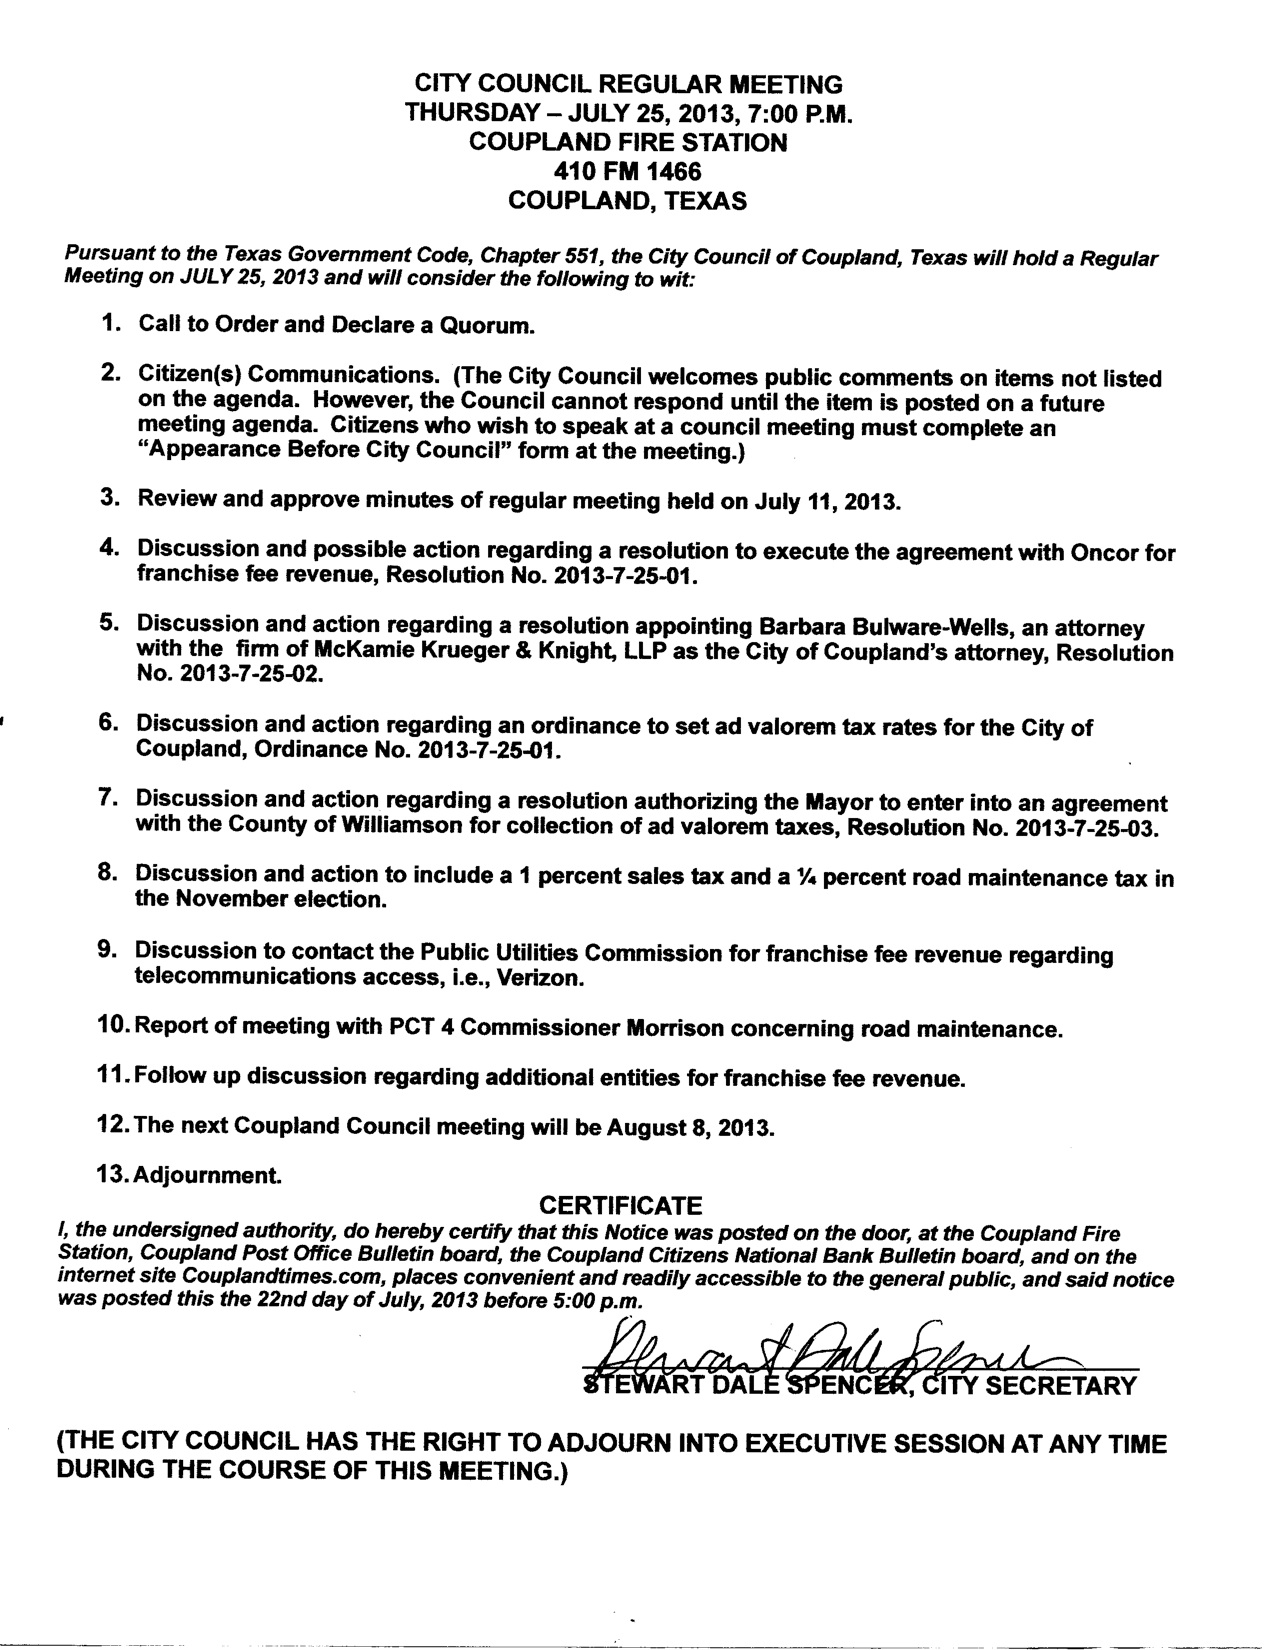 City Council Agenda - July 25, 2013